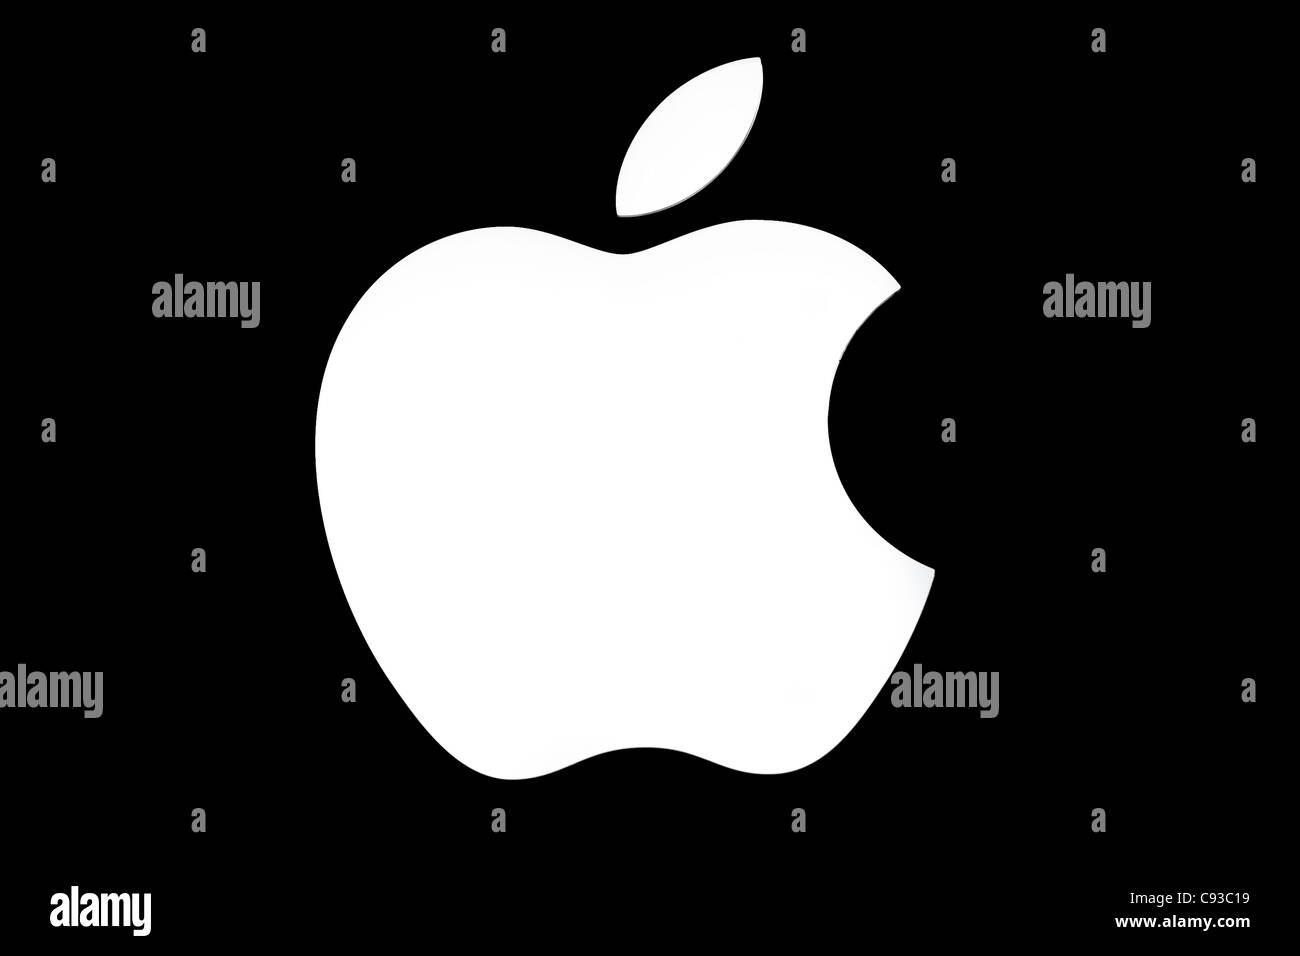 The logo for Apple Mac's operating system displayed by a premium reseller in a retail shop window. Stock Photo